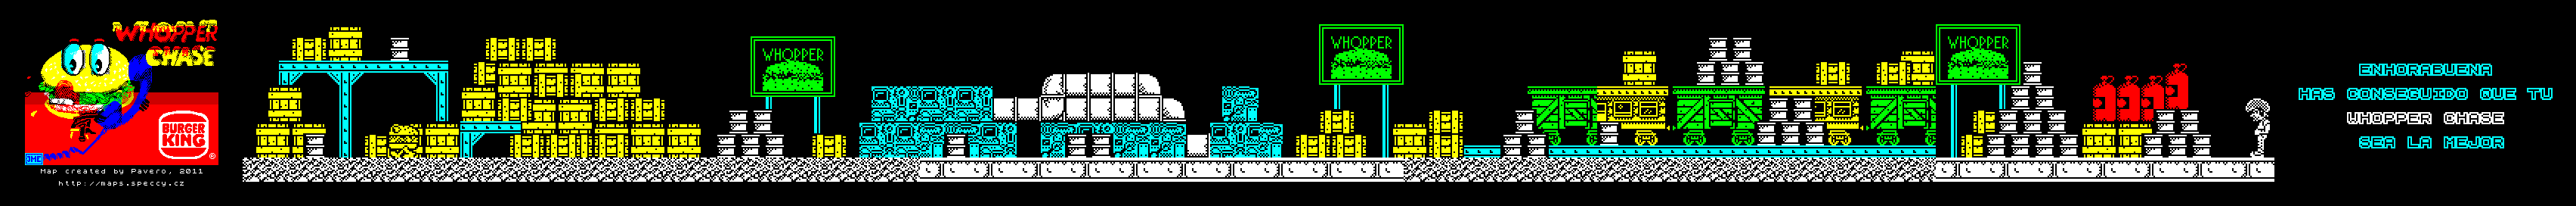 Whopper Chase - The Map